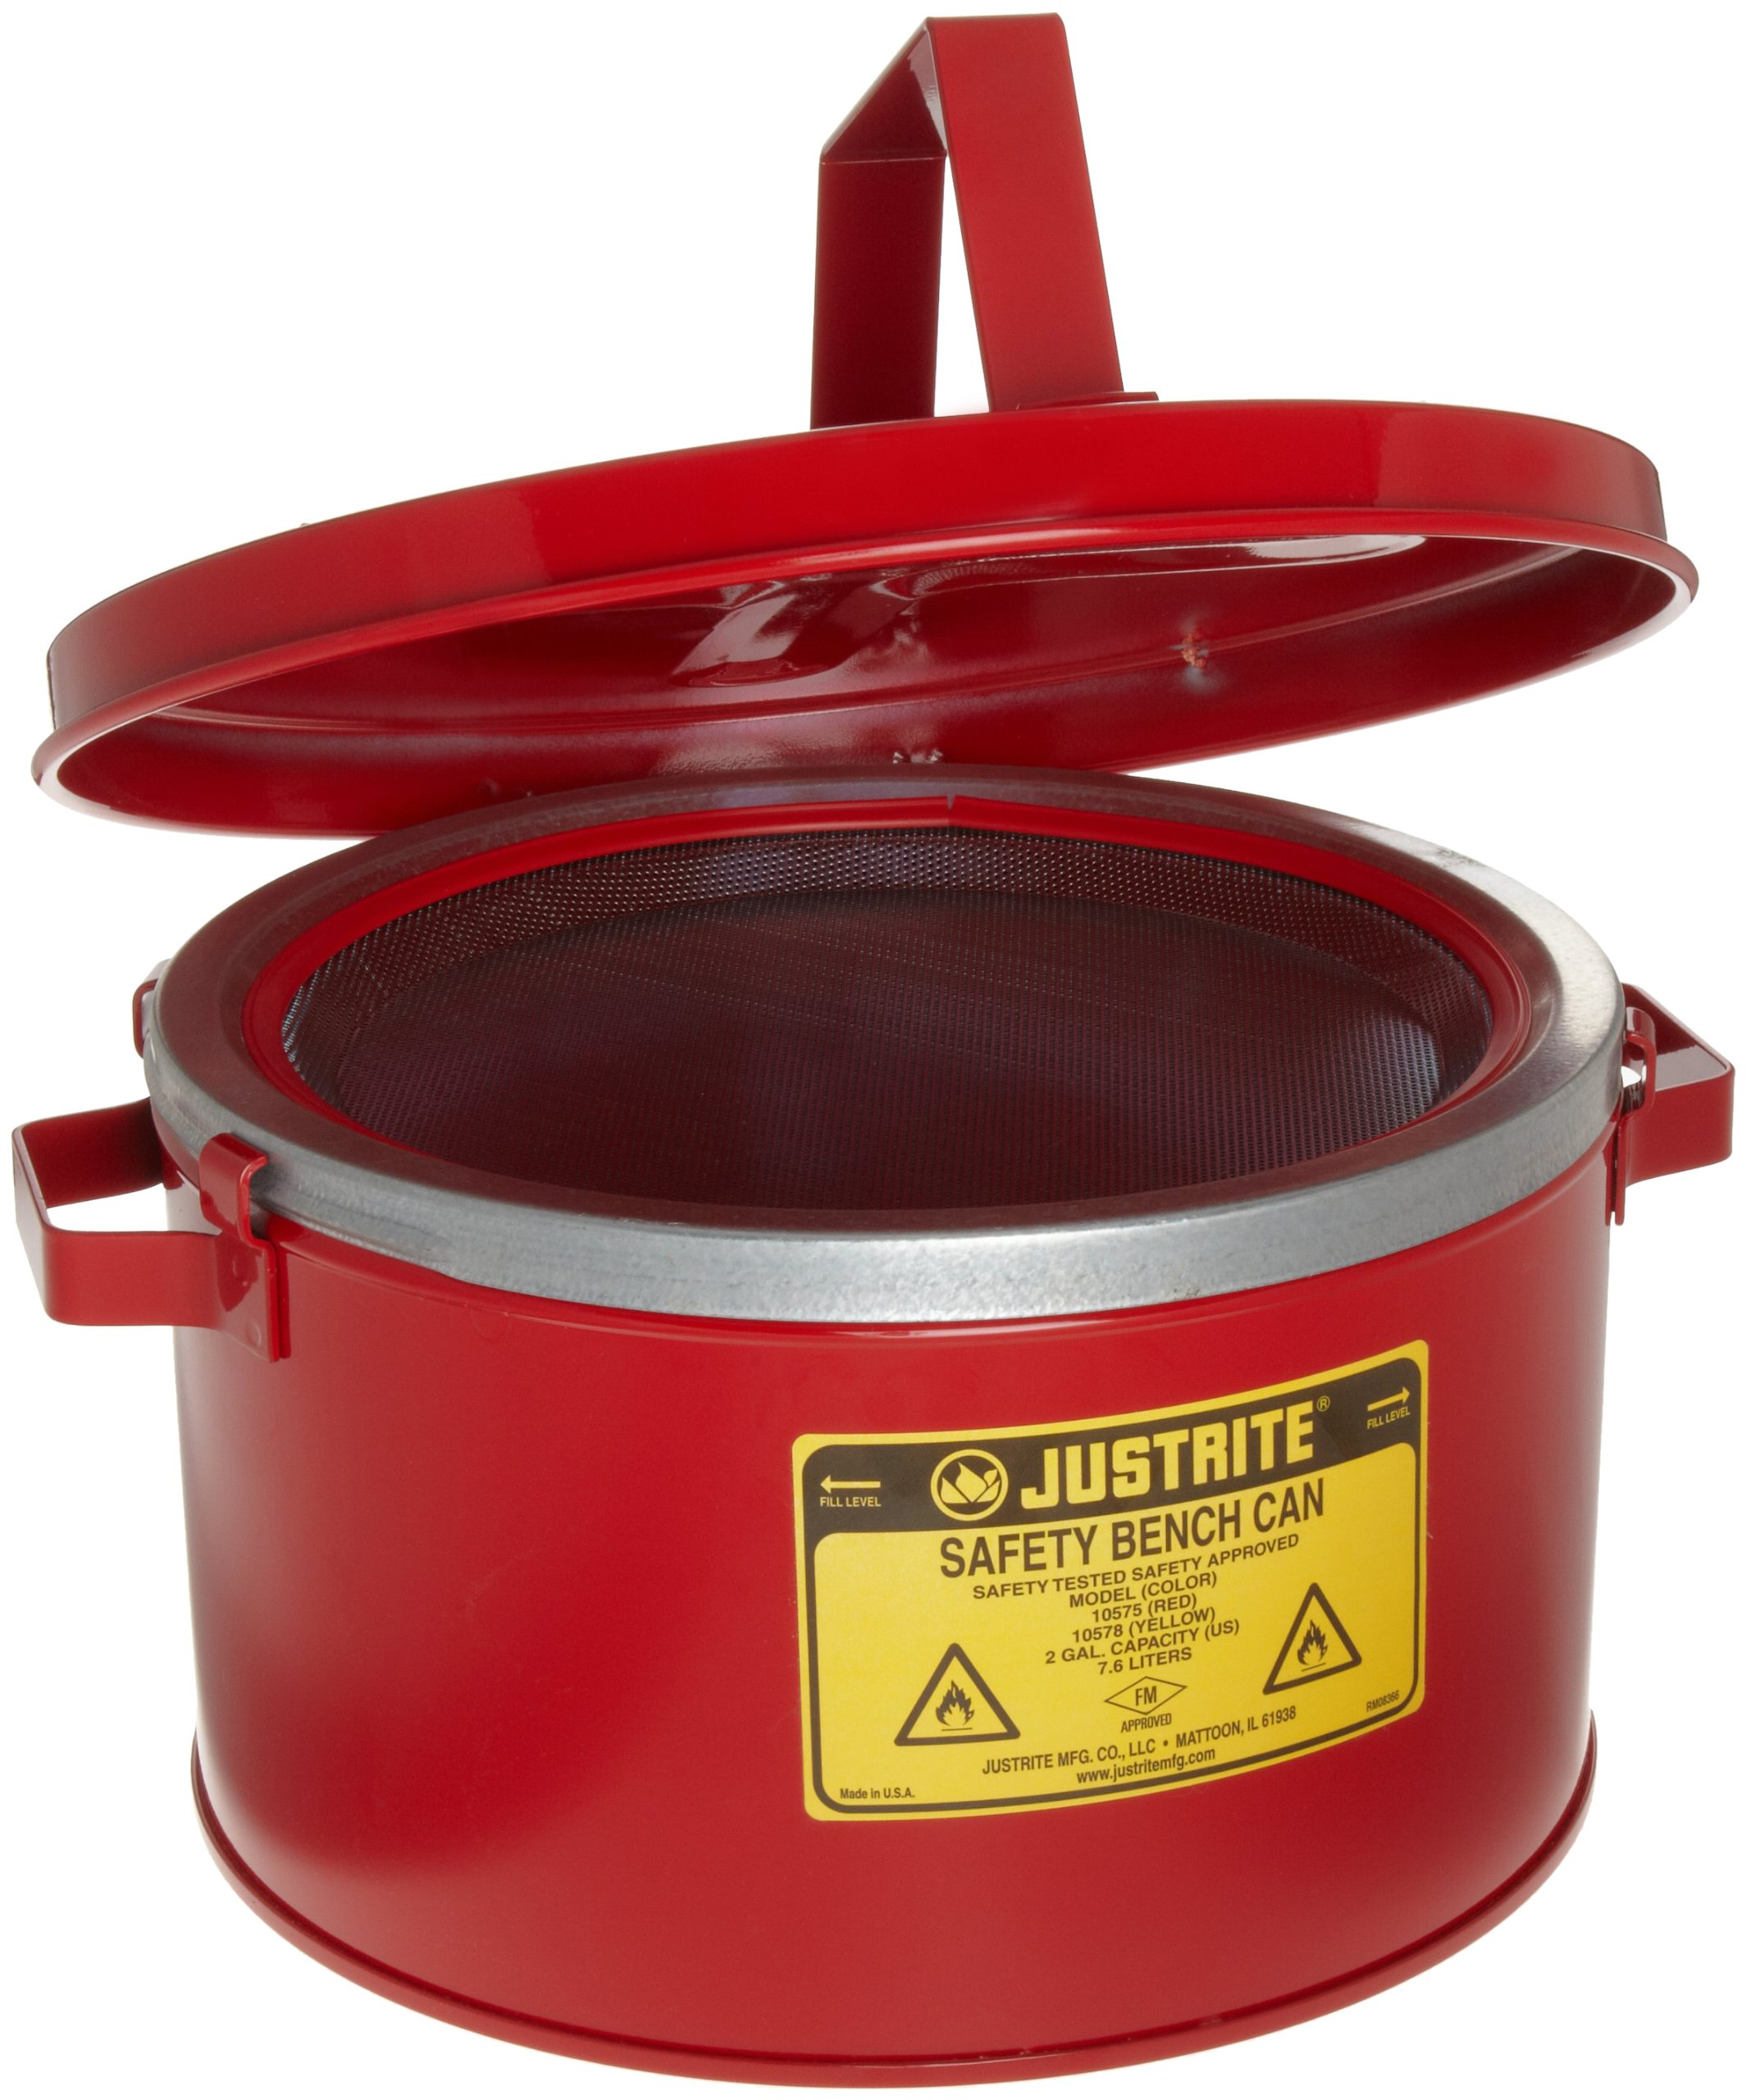 Justrite 10575 2 Gallon, 5 7/8'' H, 11 1/2'' O.D, 9 3/4'' Diameter, 24 Gauge Premium Coated Steel Bench Can